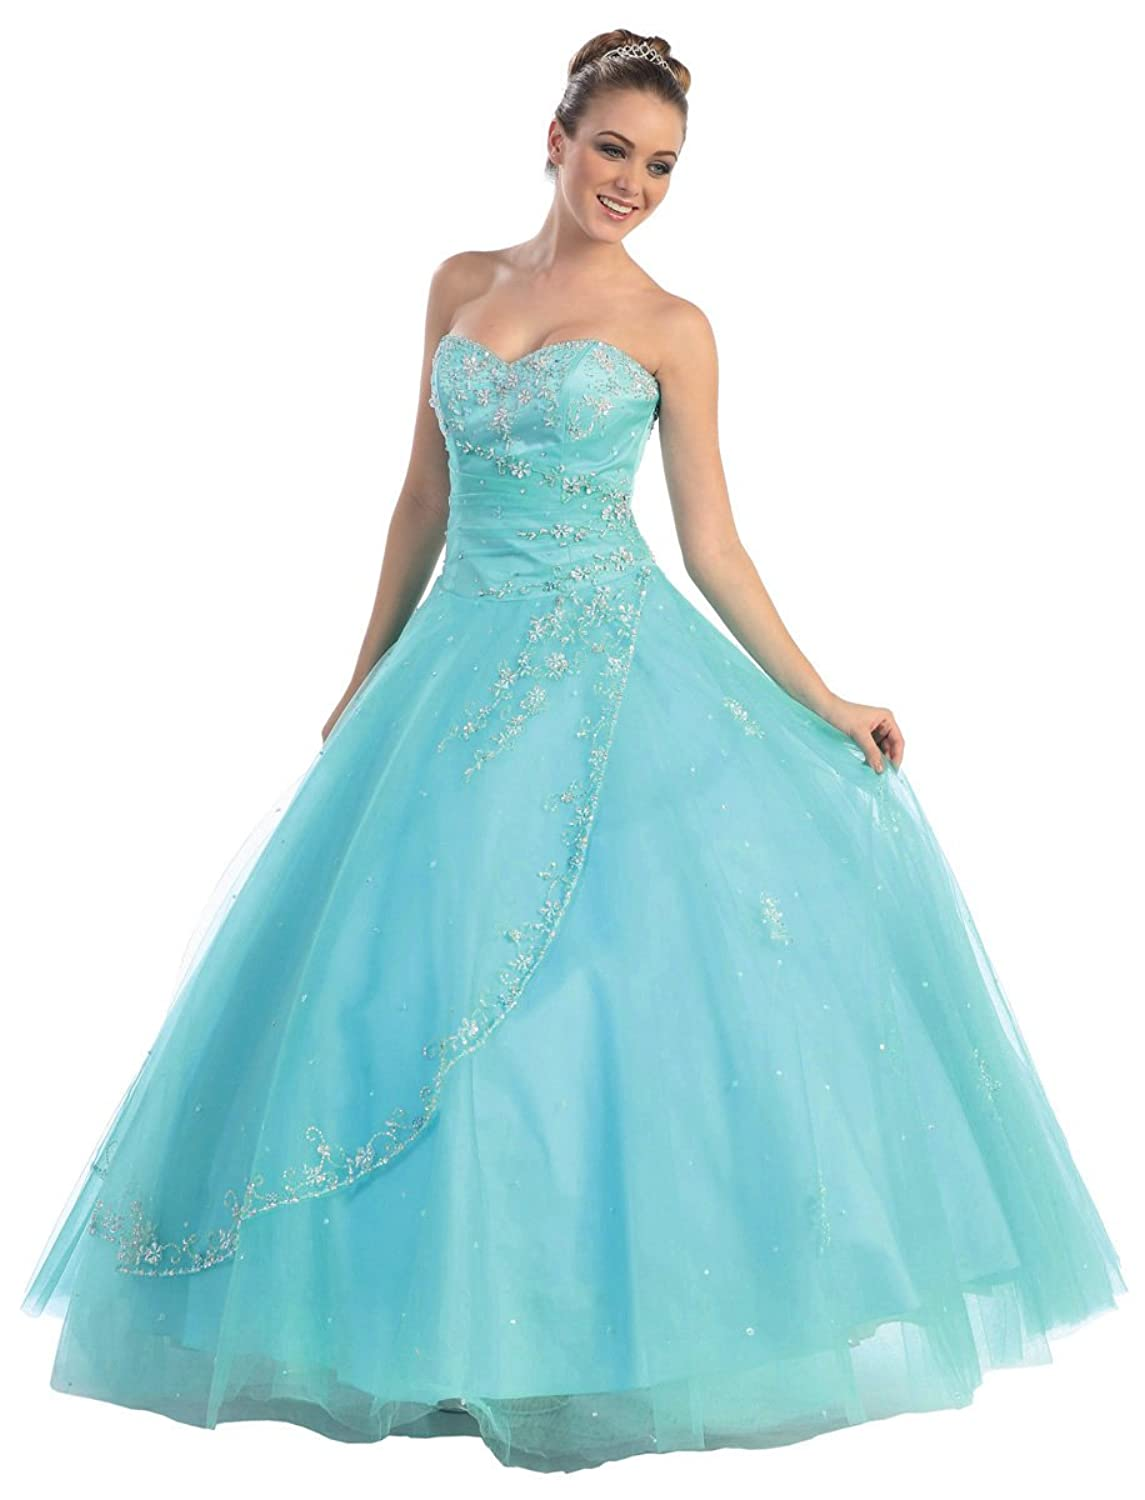 Amazon.com: Faironly M25 Quinceanera Formal Prom Dress: Clothing